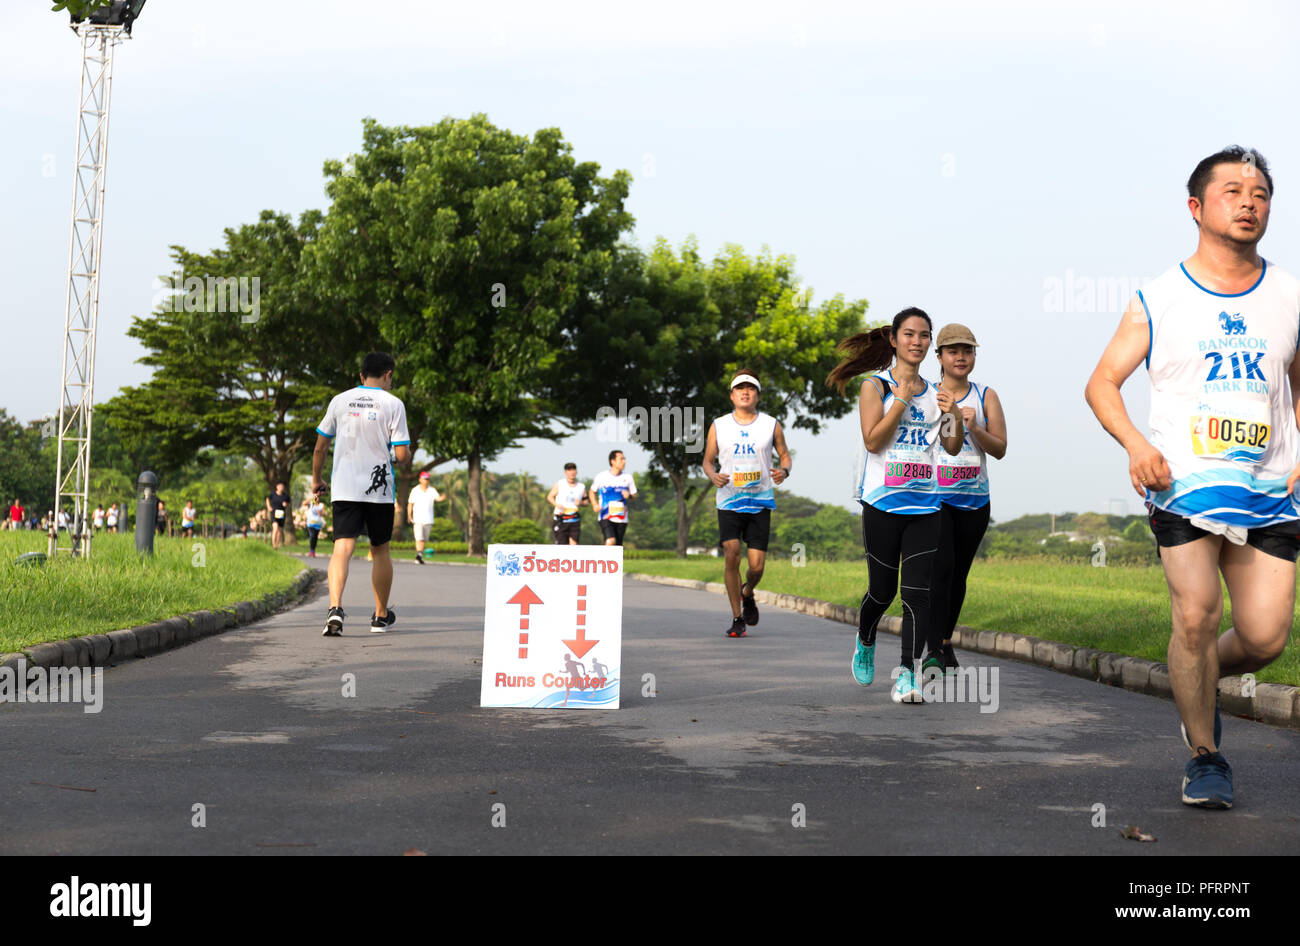 Bangkok Thailand - May 21, 2017 - Singha Logo on Marathon runners Group People Race Outdoor Sport Training in the park. - Stock Image